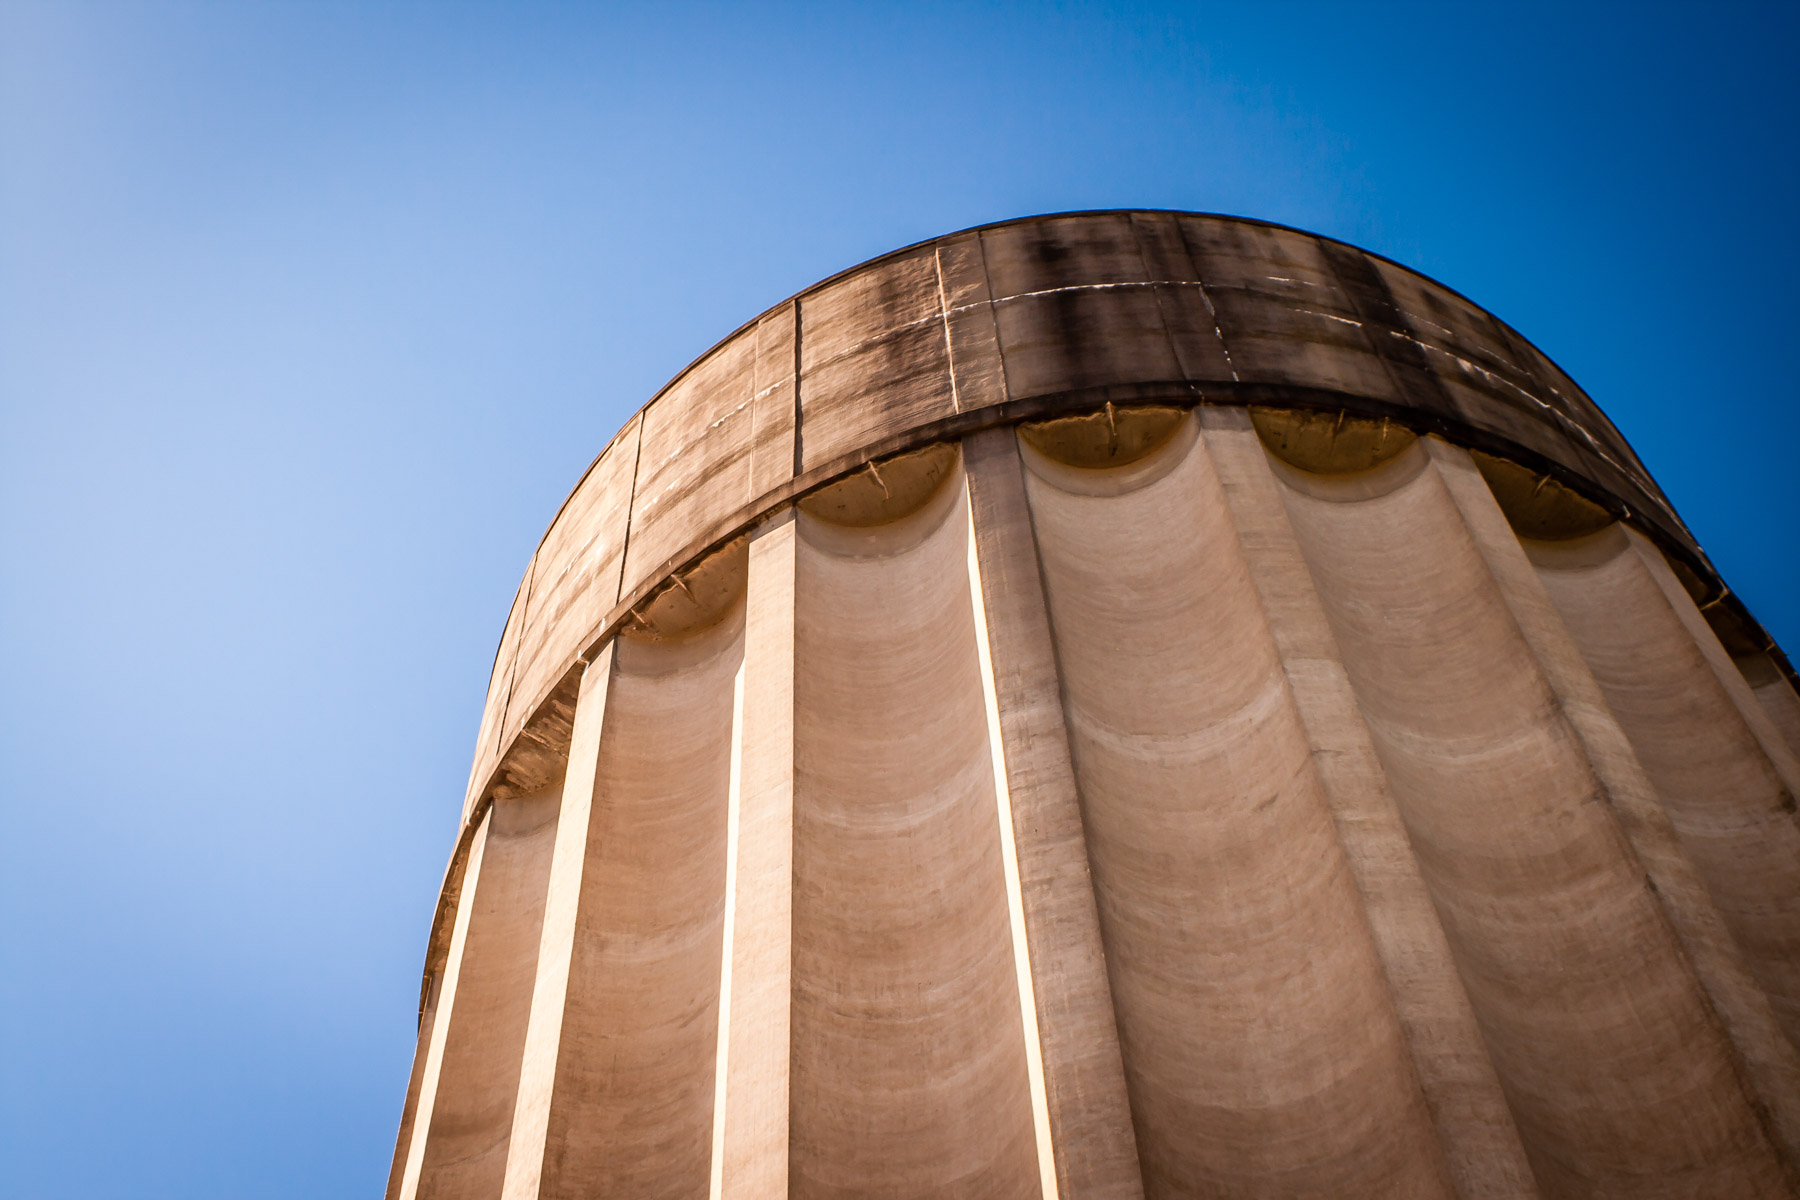 Concrete Water Tower | Tyler | 75CentralPhotography